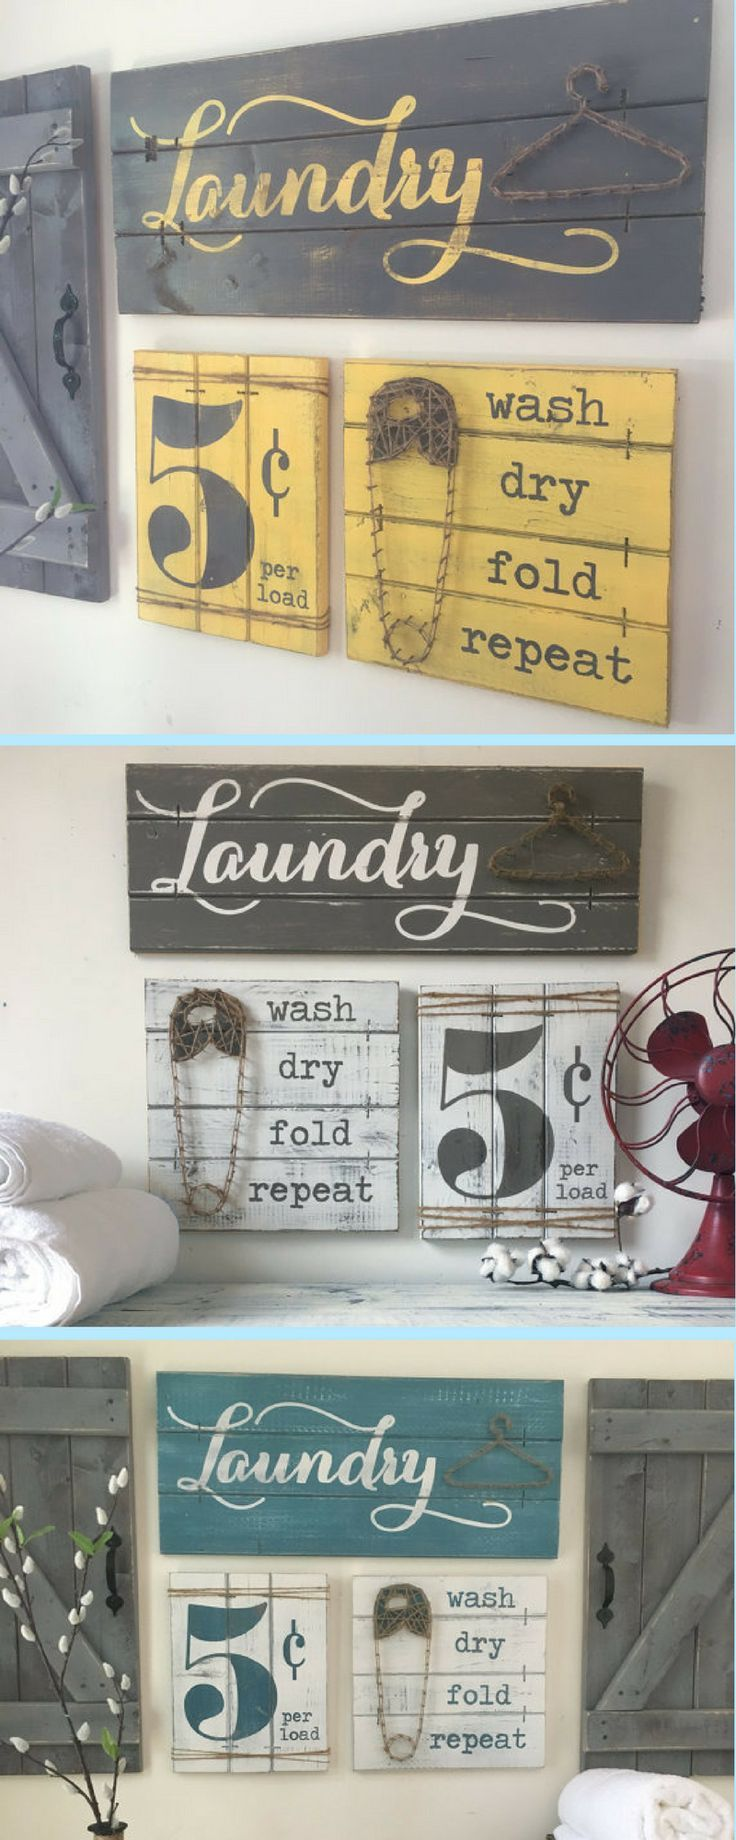 Laundry Room Signs Wash Dry Fold Repeat In A Variety Of Colors To Make Your Color Scheme I Personally Love The Yellow And Grey Homedecor Home